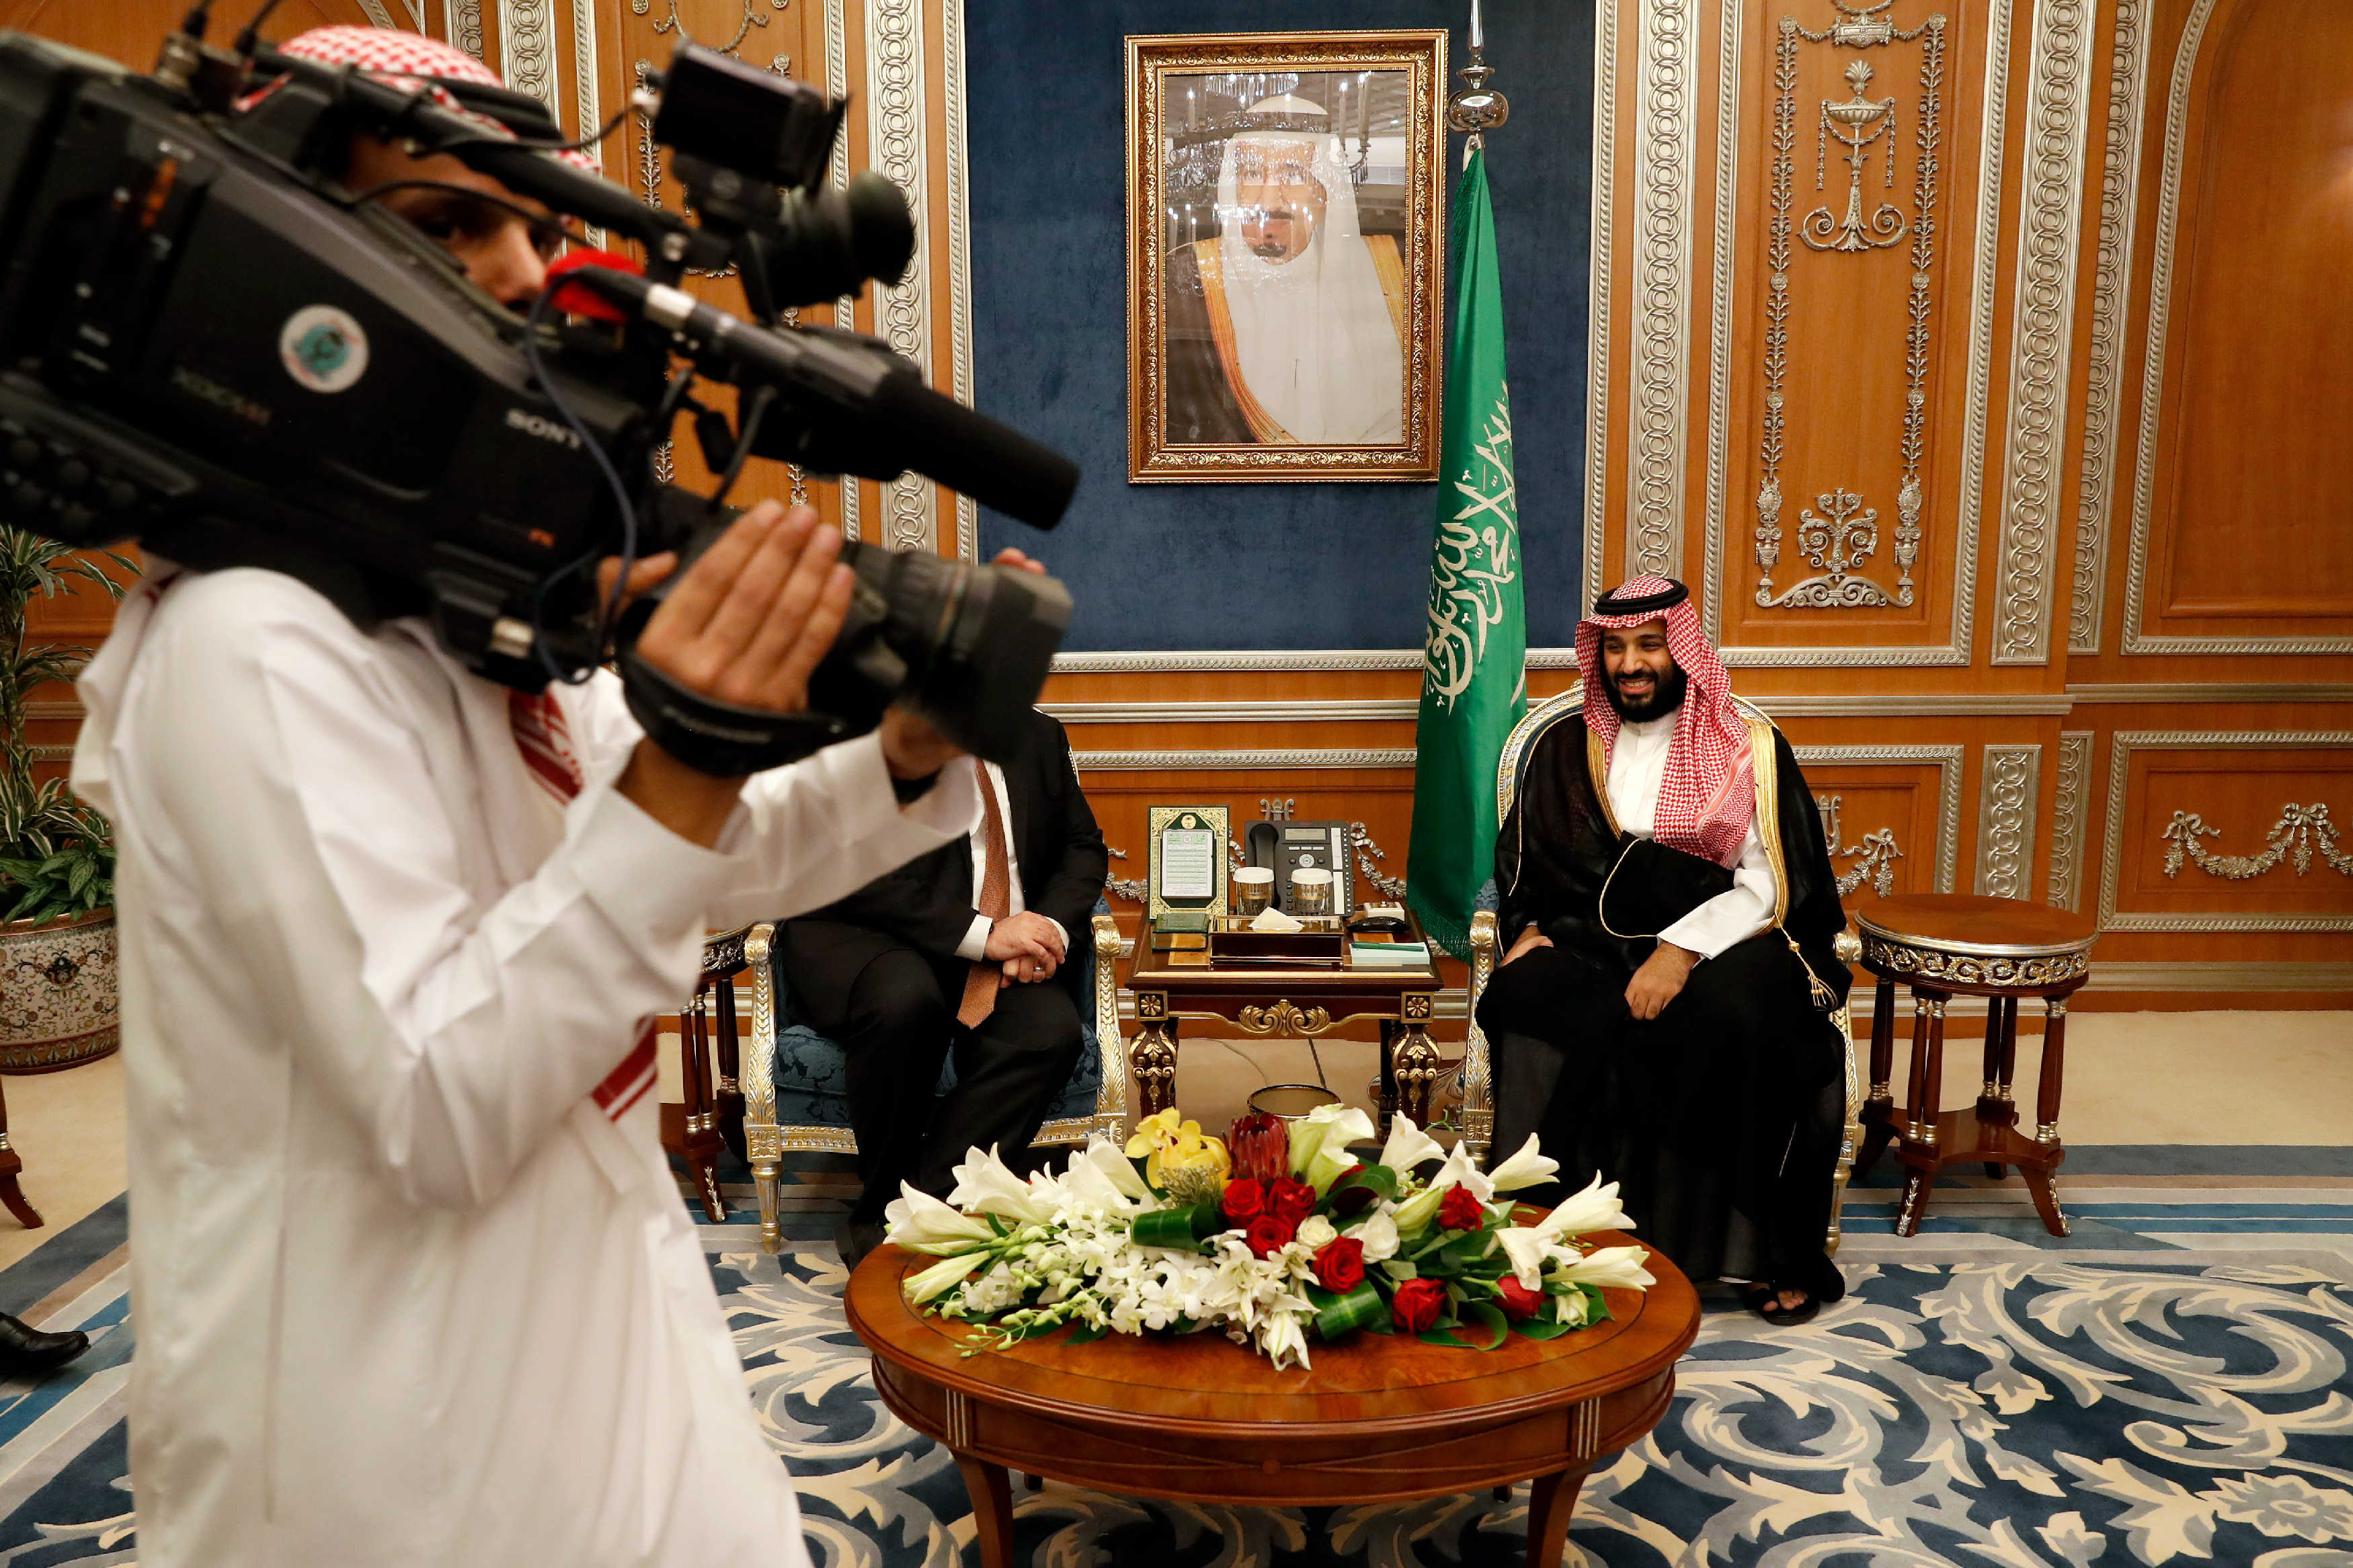 A cameraman gets into position as U.S. Secretary of State Mike Pompeo meets with Saudi Crown Prince Mohammed bin Salman, in Riyadh, Saudi Arabia, Tuesday Oct. 16, 2018. Pompeo also met on Tuesday with Saudi King Salman over the disappearance and alleged slaying of Saudi writer Jamal Khashoggi, who vanished two weeks ago during a visit to the Saudi Consulate in Istanbul. (Leah Millis/Pool via AP)